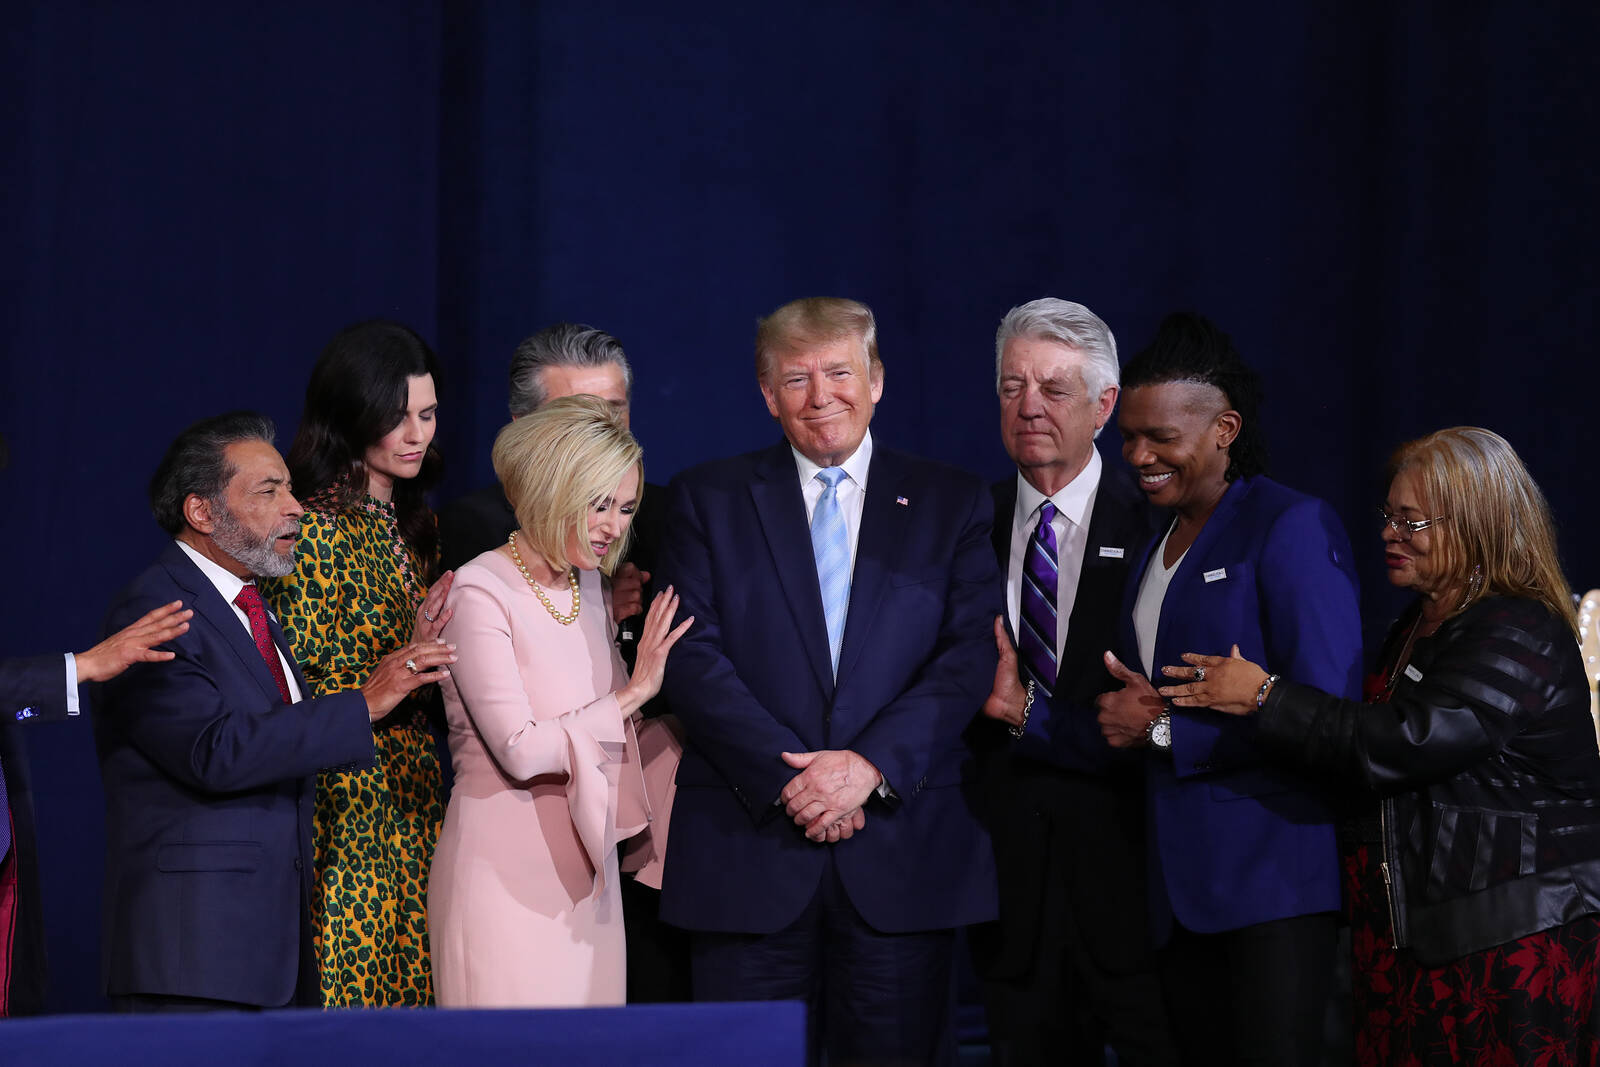 Faith leaders pray over President Donald Trump during a 'Evangelicals for Trump' campaign event held at the King Jesus International Ministry on Jan. 3, 2020 in Miami, Florida. Credit: Joe Raedle/Getty Images